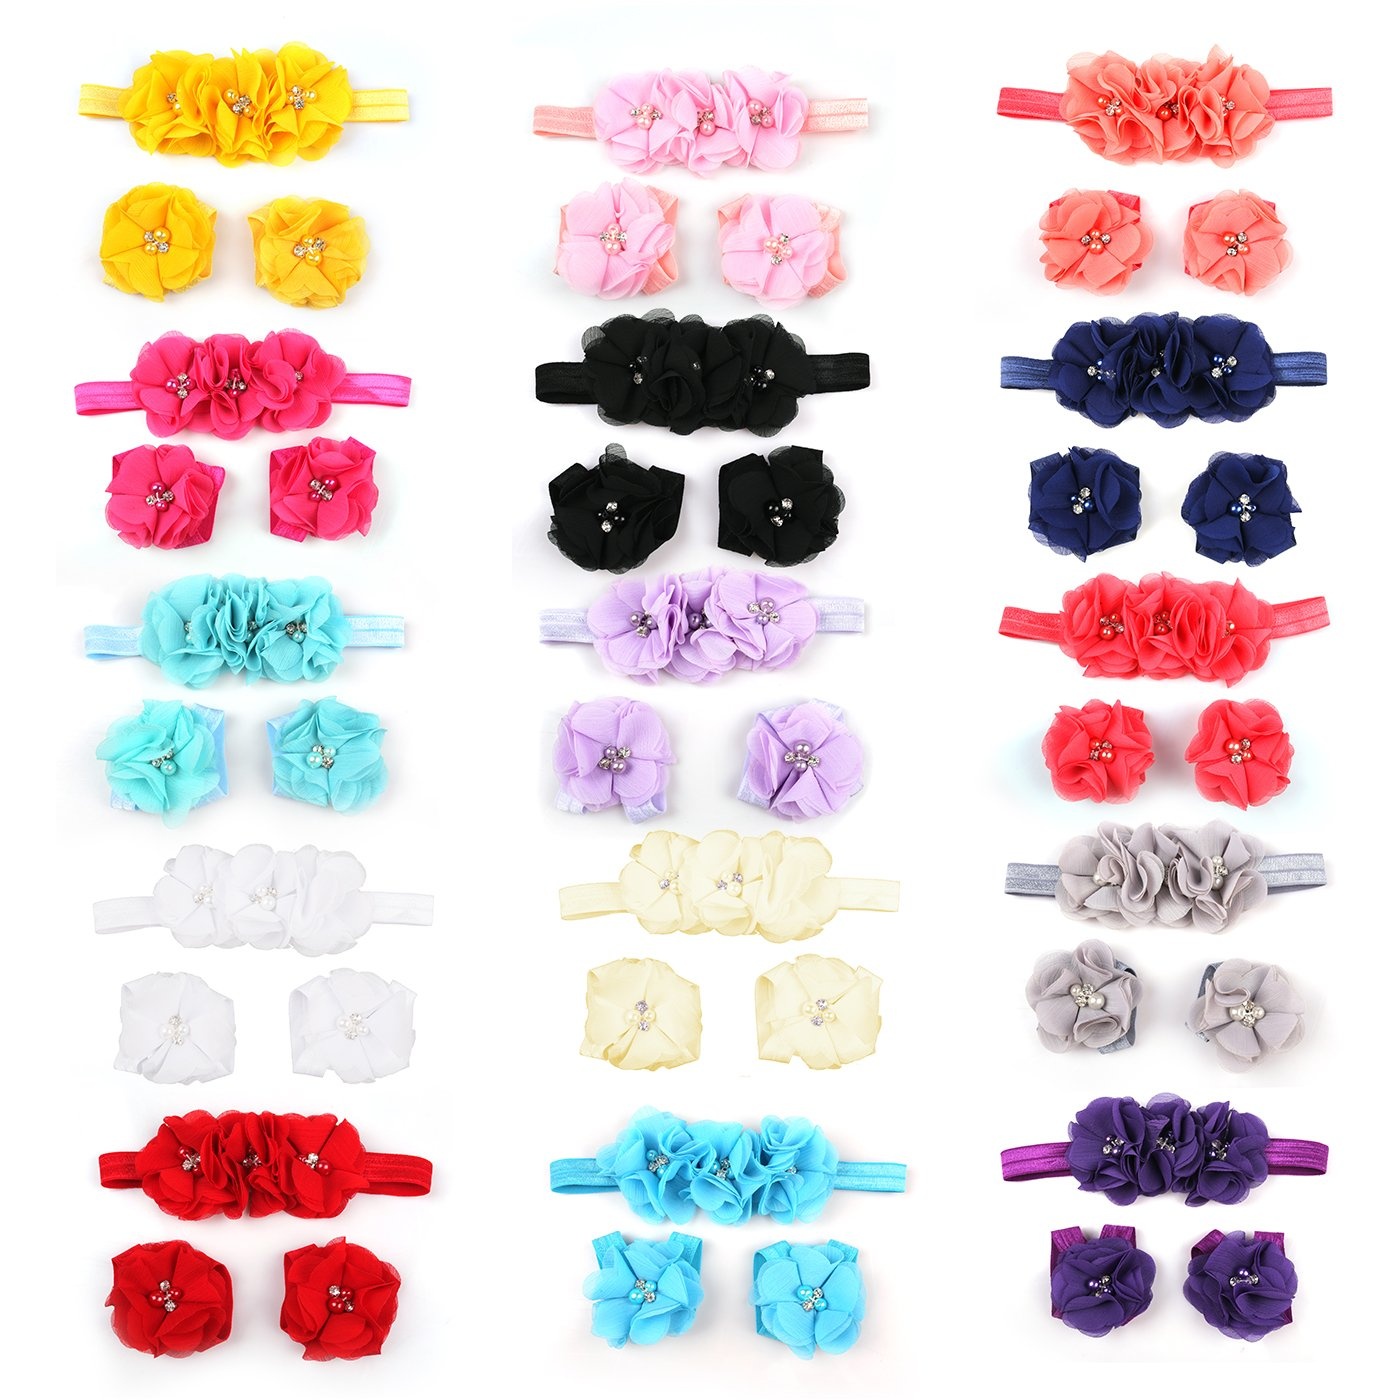 15 Colors Foot Flower Barefoot Sandals Headbands Set For Baby Girls